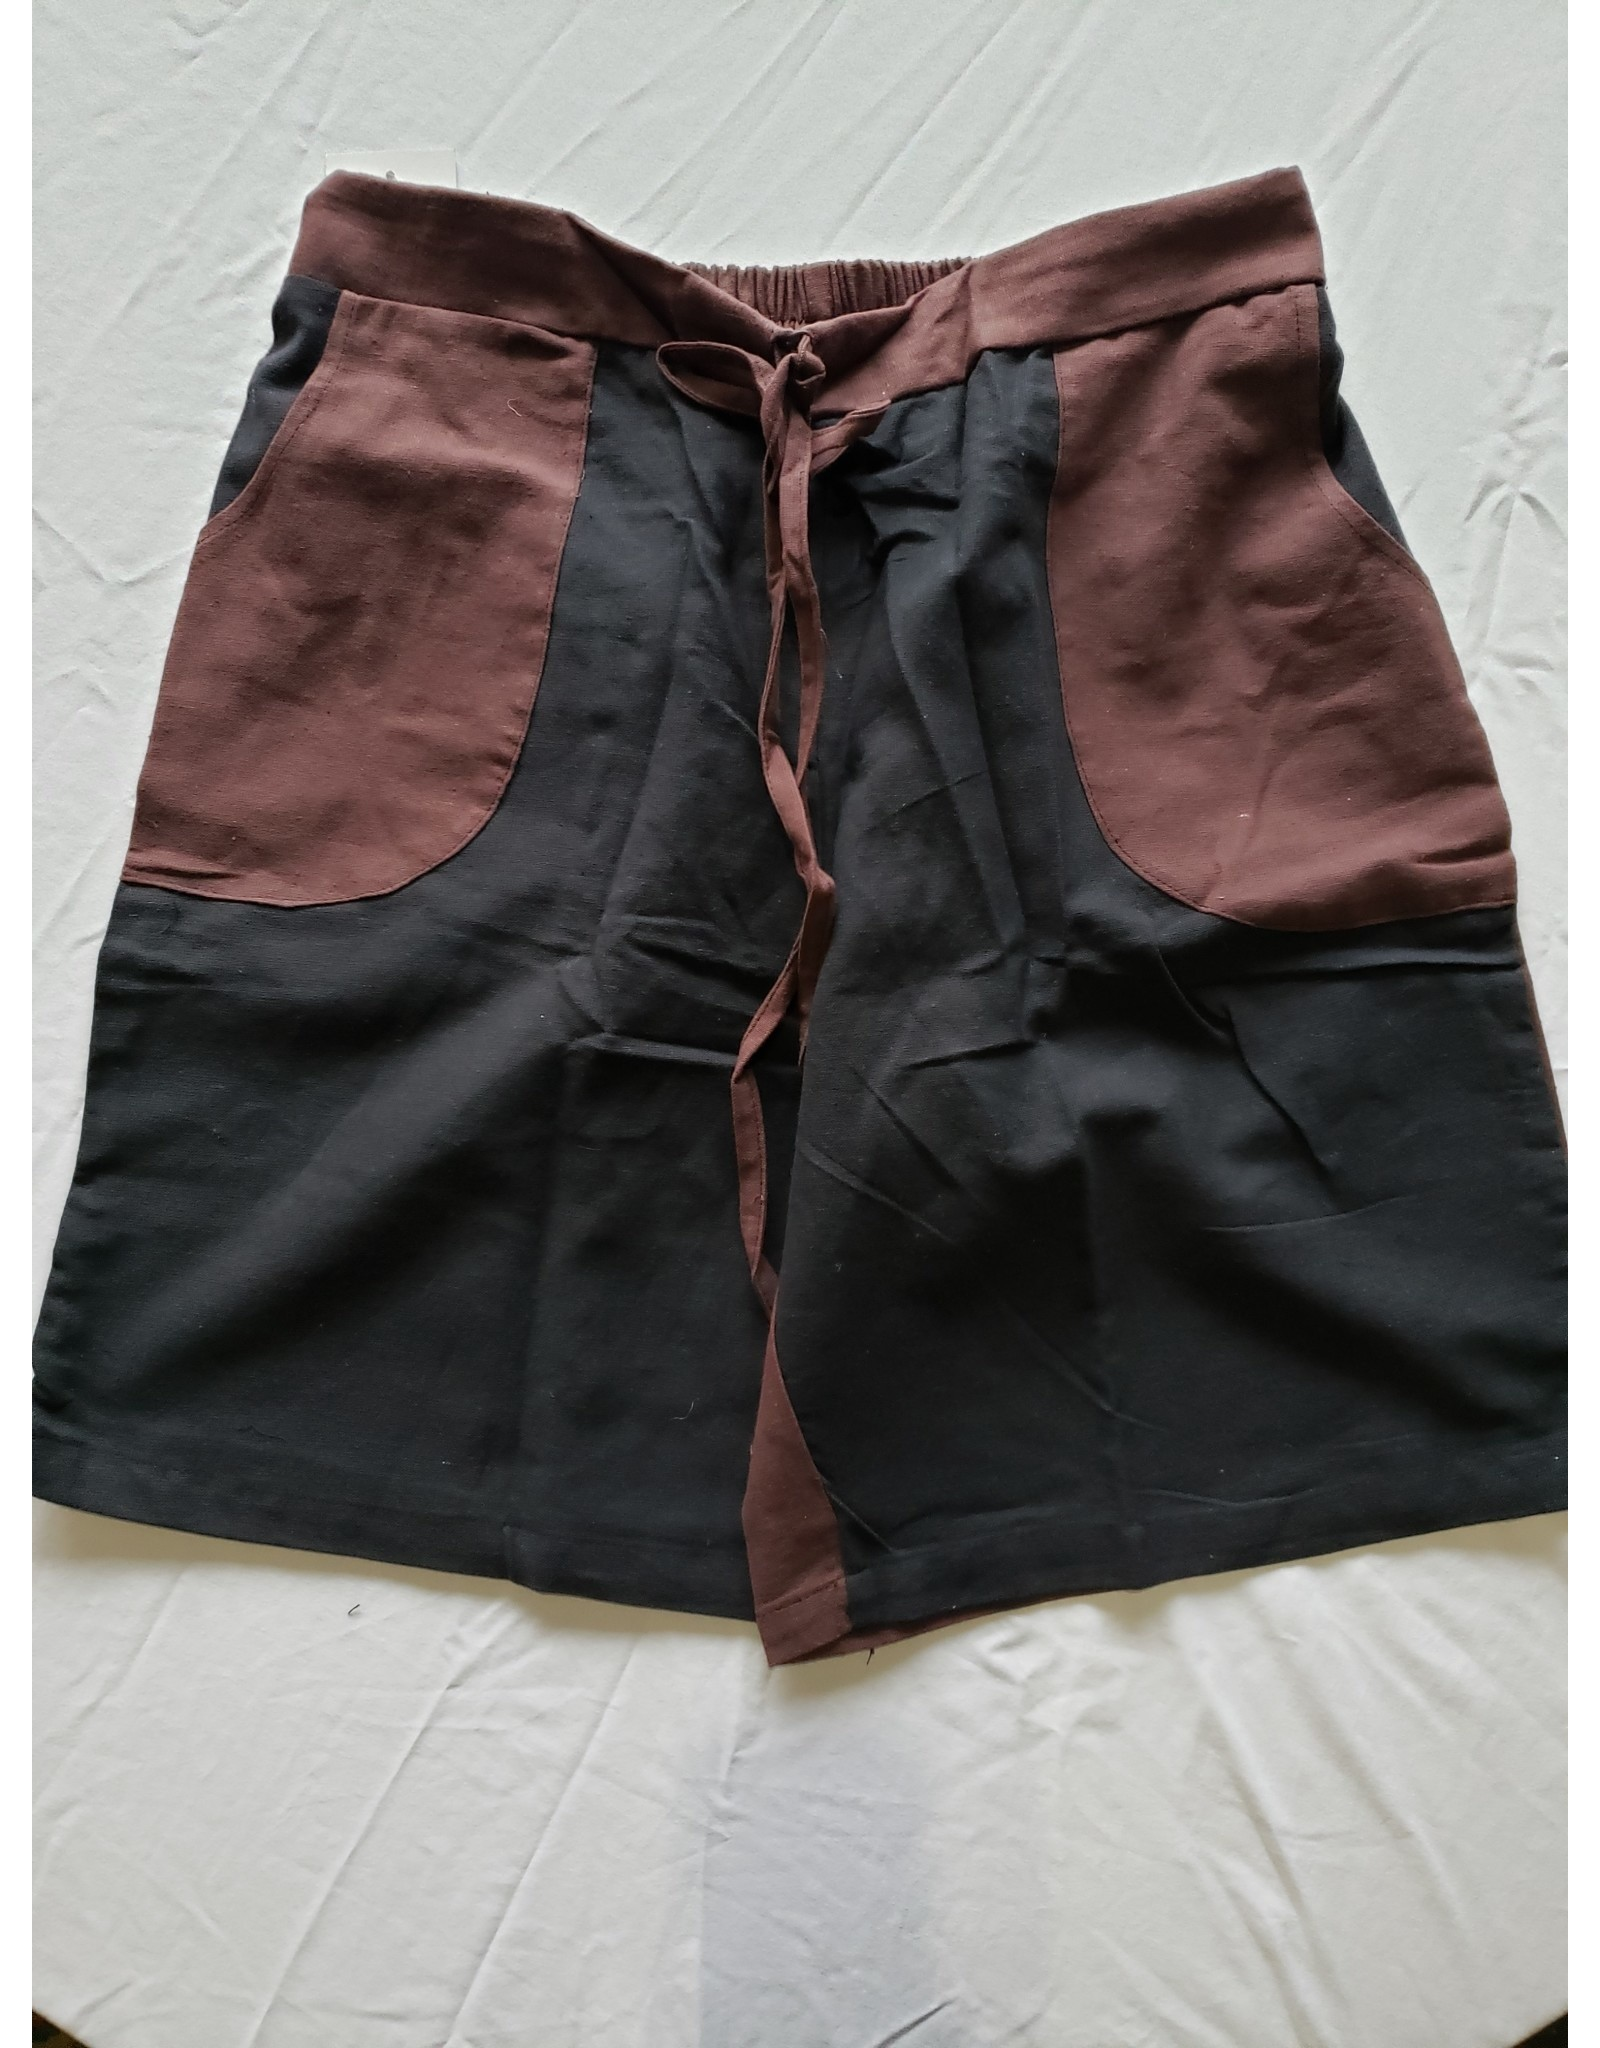 Two - Tone Men's Shorts - Brown - L/XL